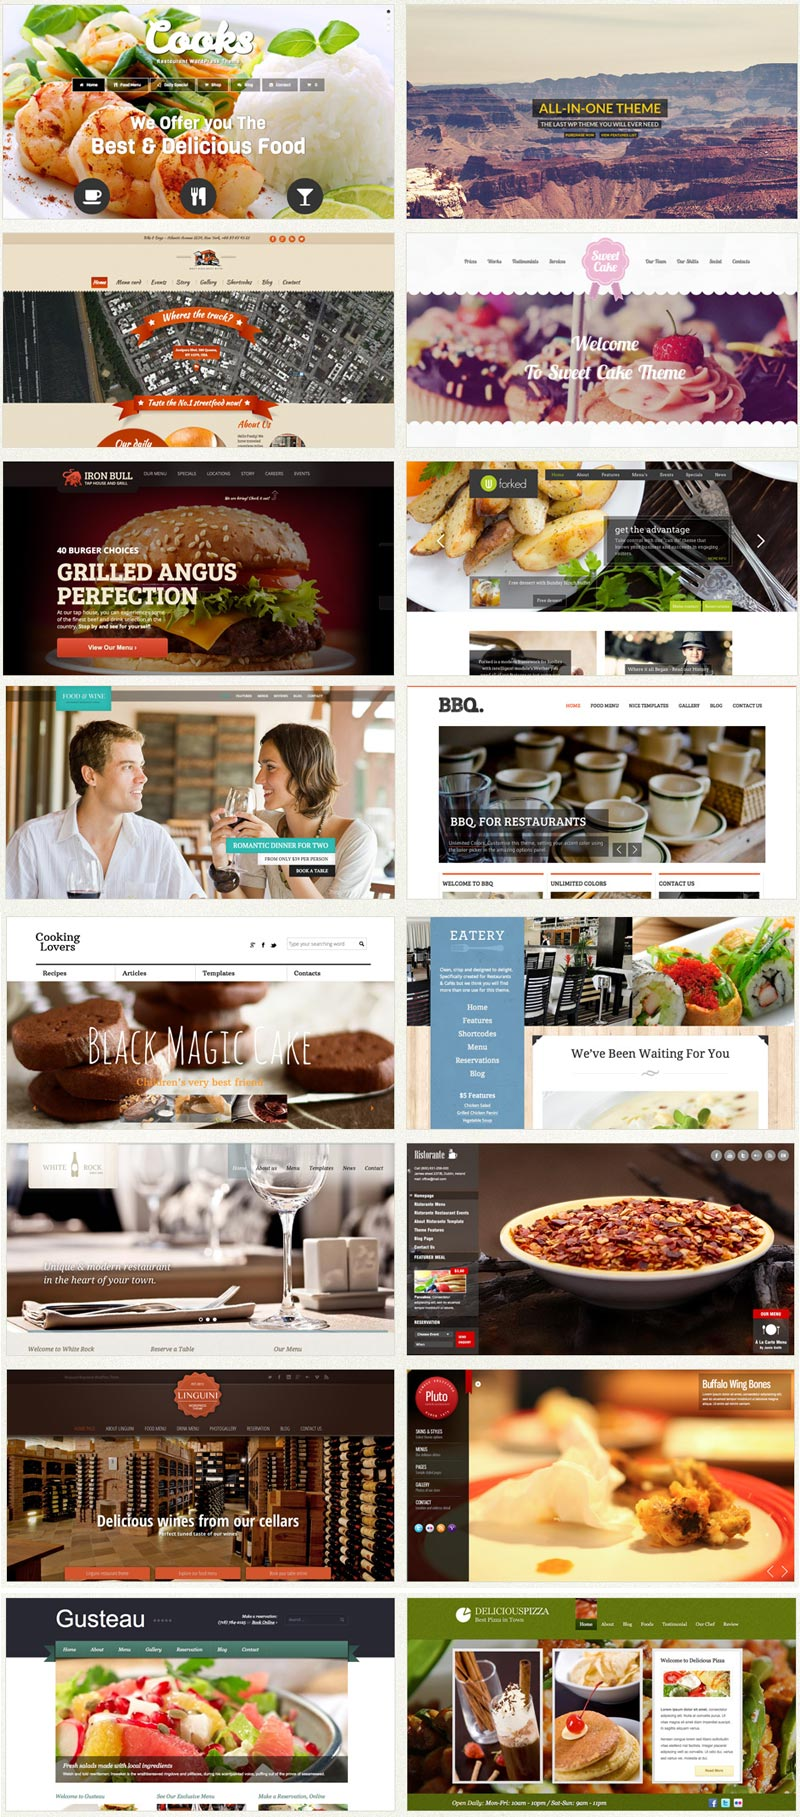 Restaurant web design social made and digital marketing